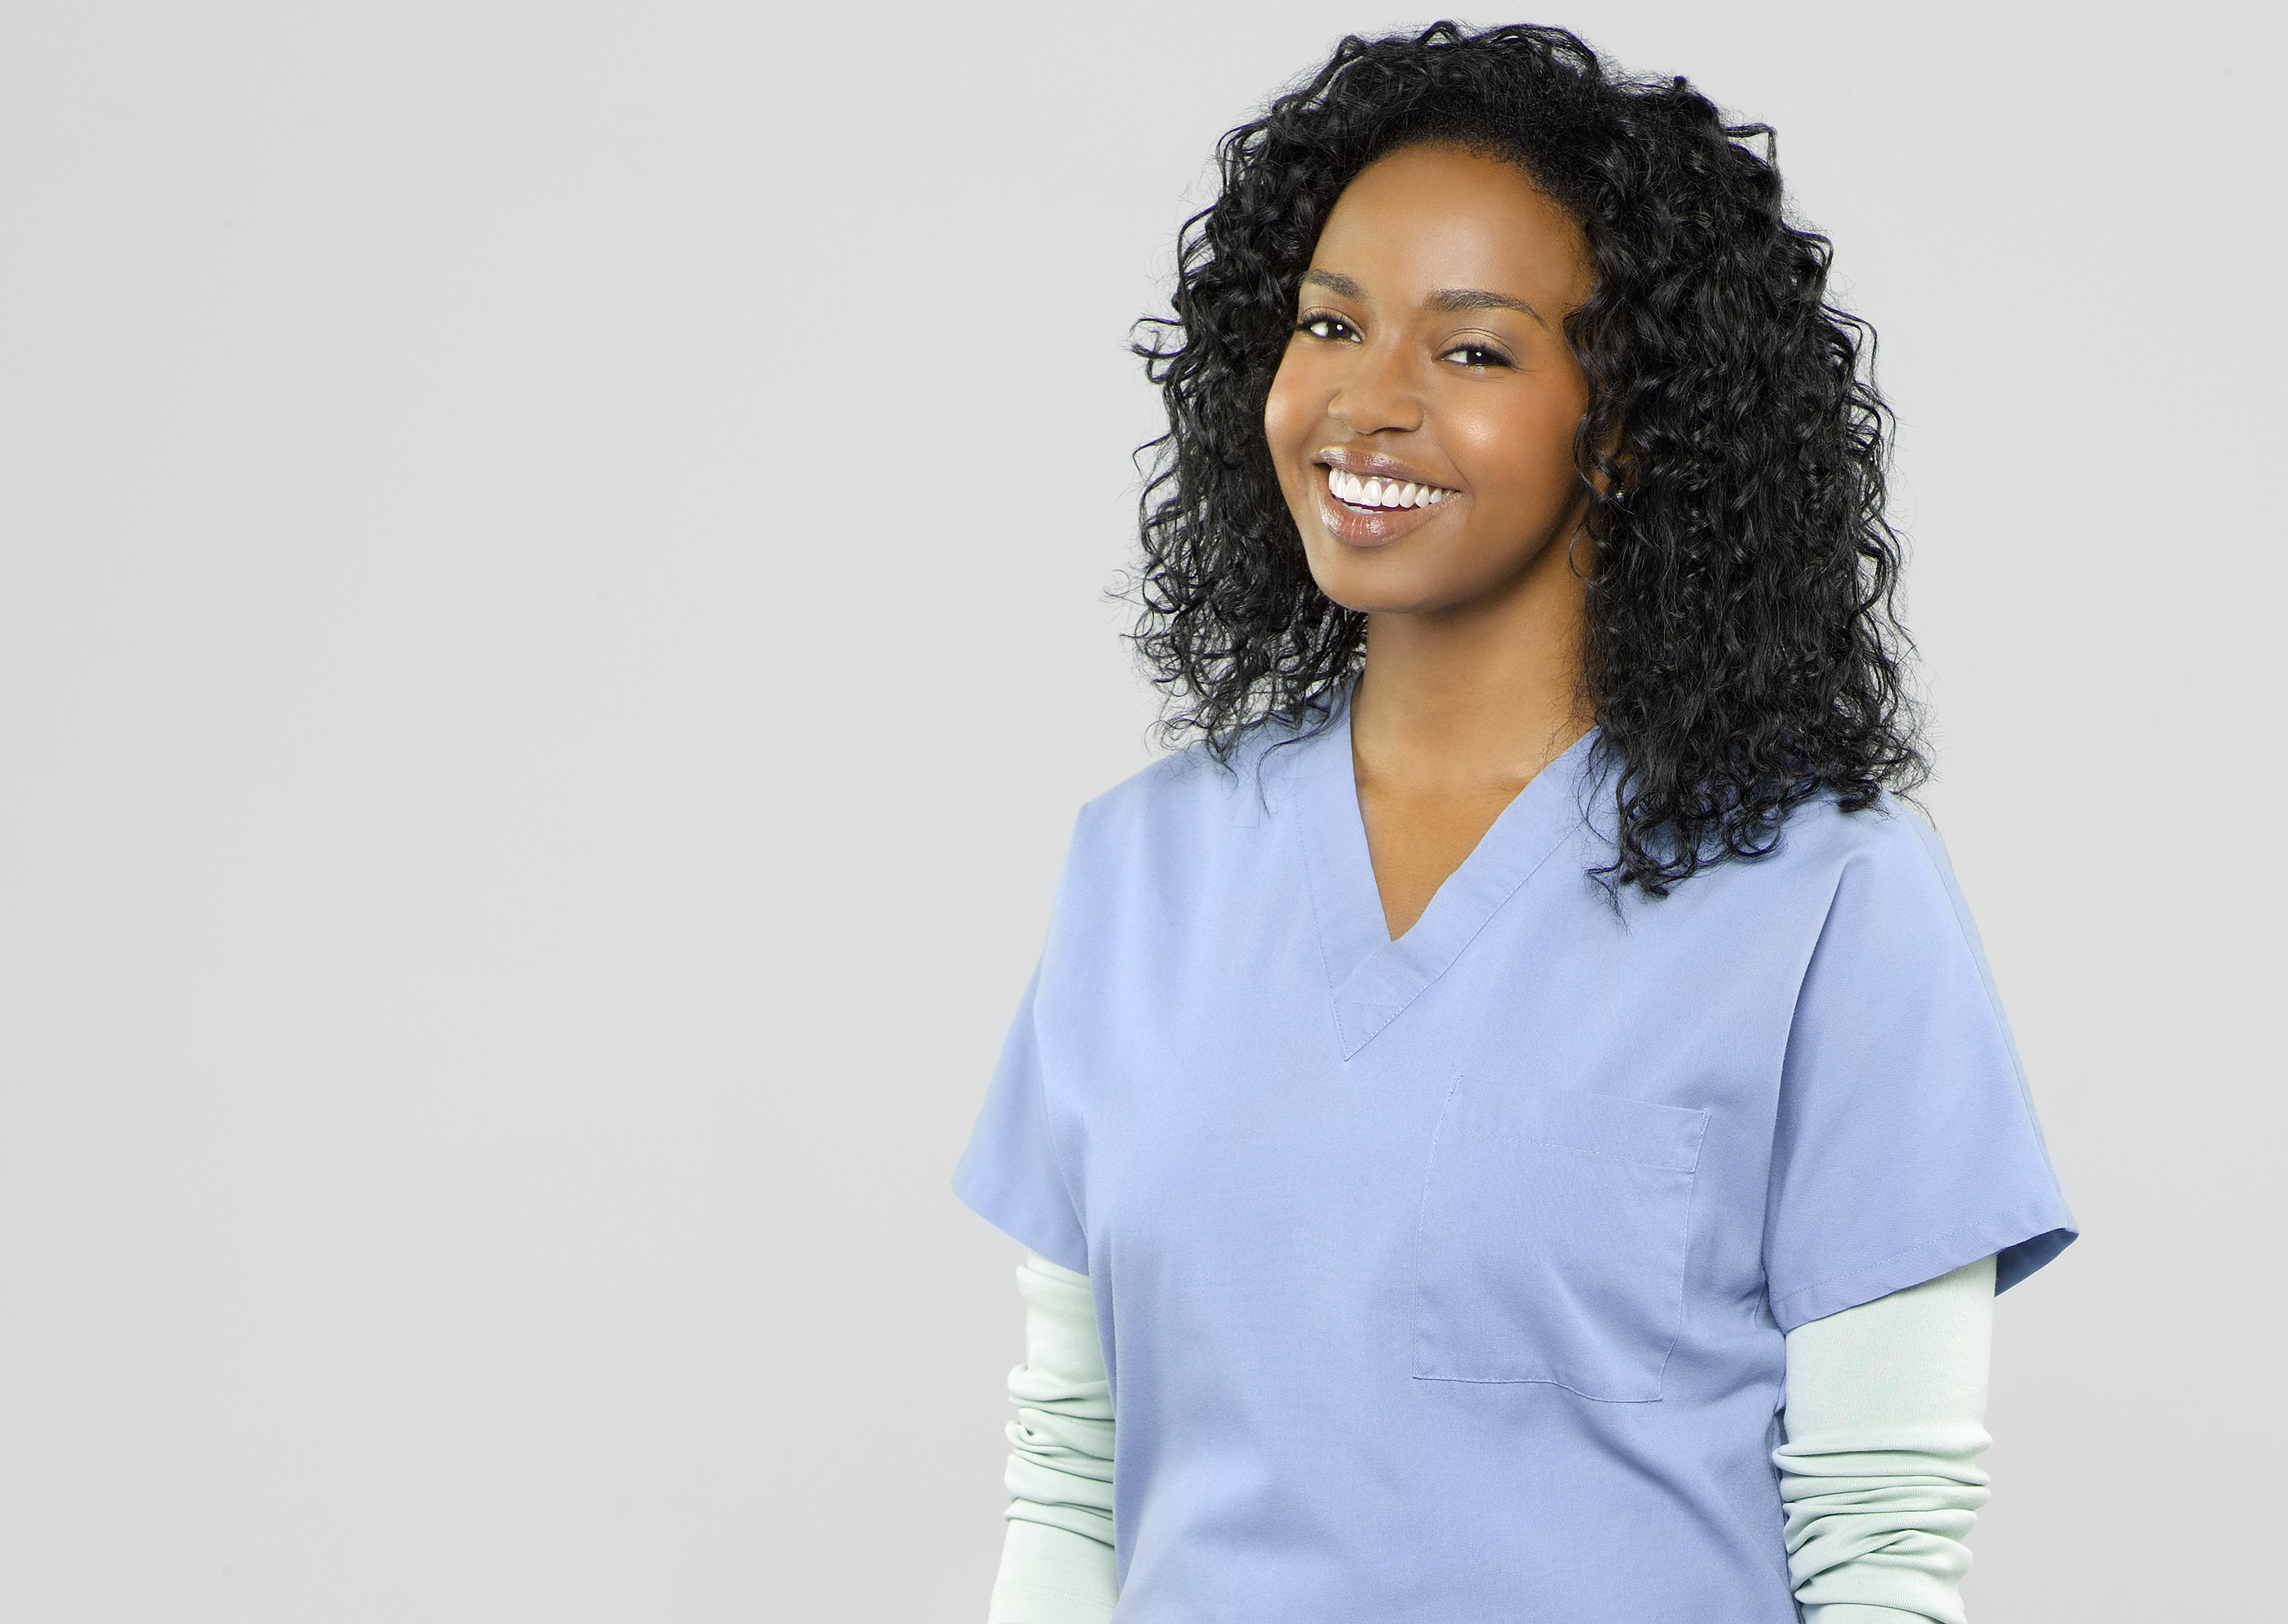 Toast: ABC Passes on Shondaland Comedy Series - canceled TV shows ...